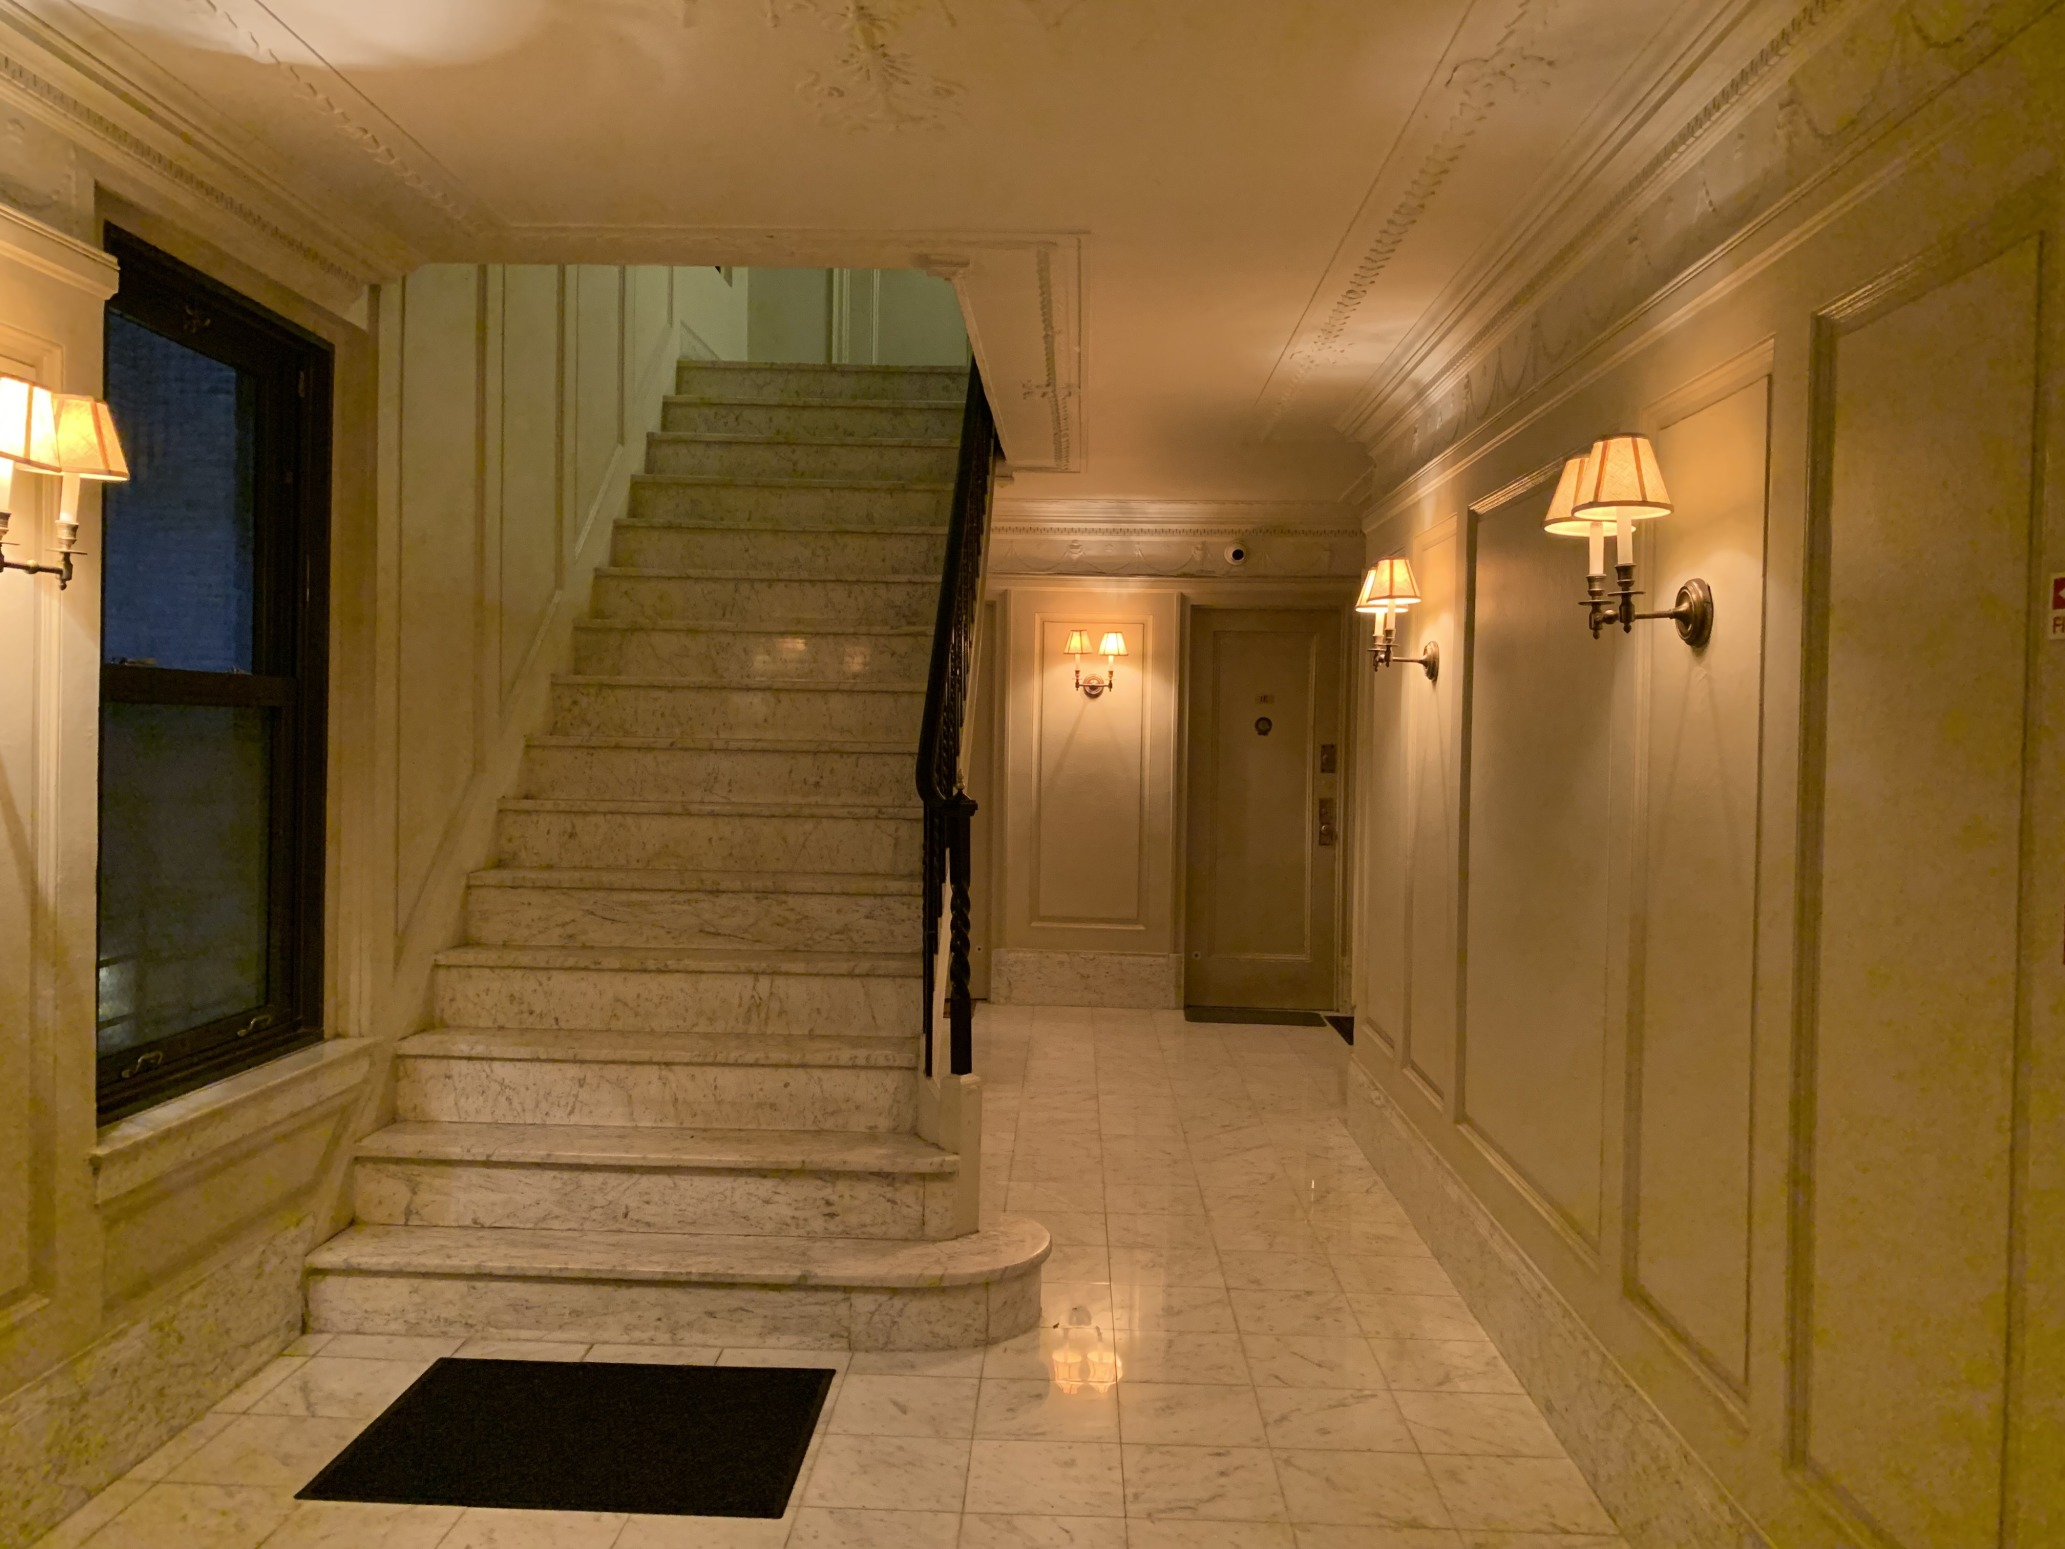 17 West 64th Street Central Park West New York NY 10023